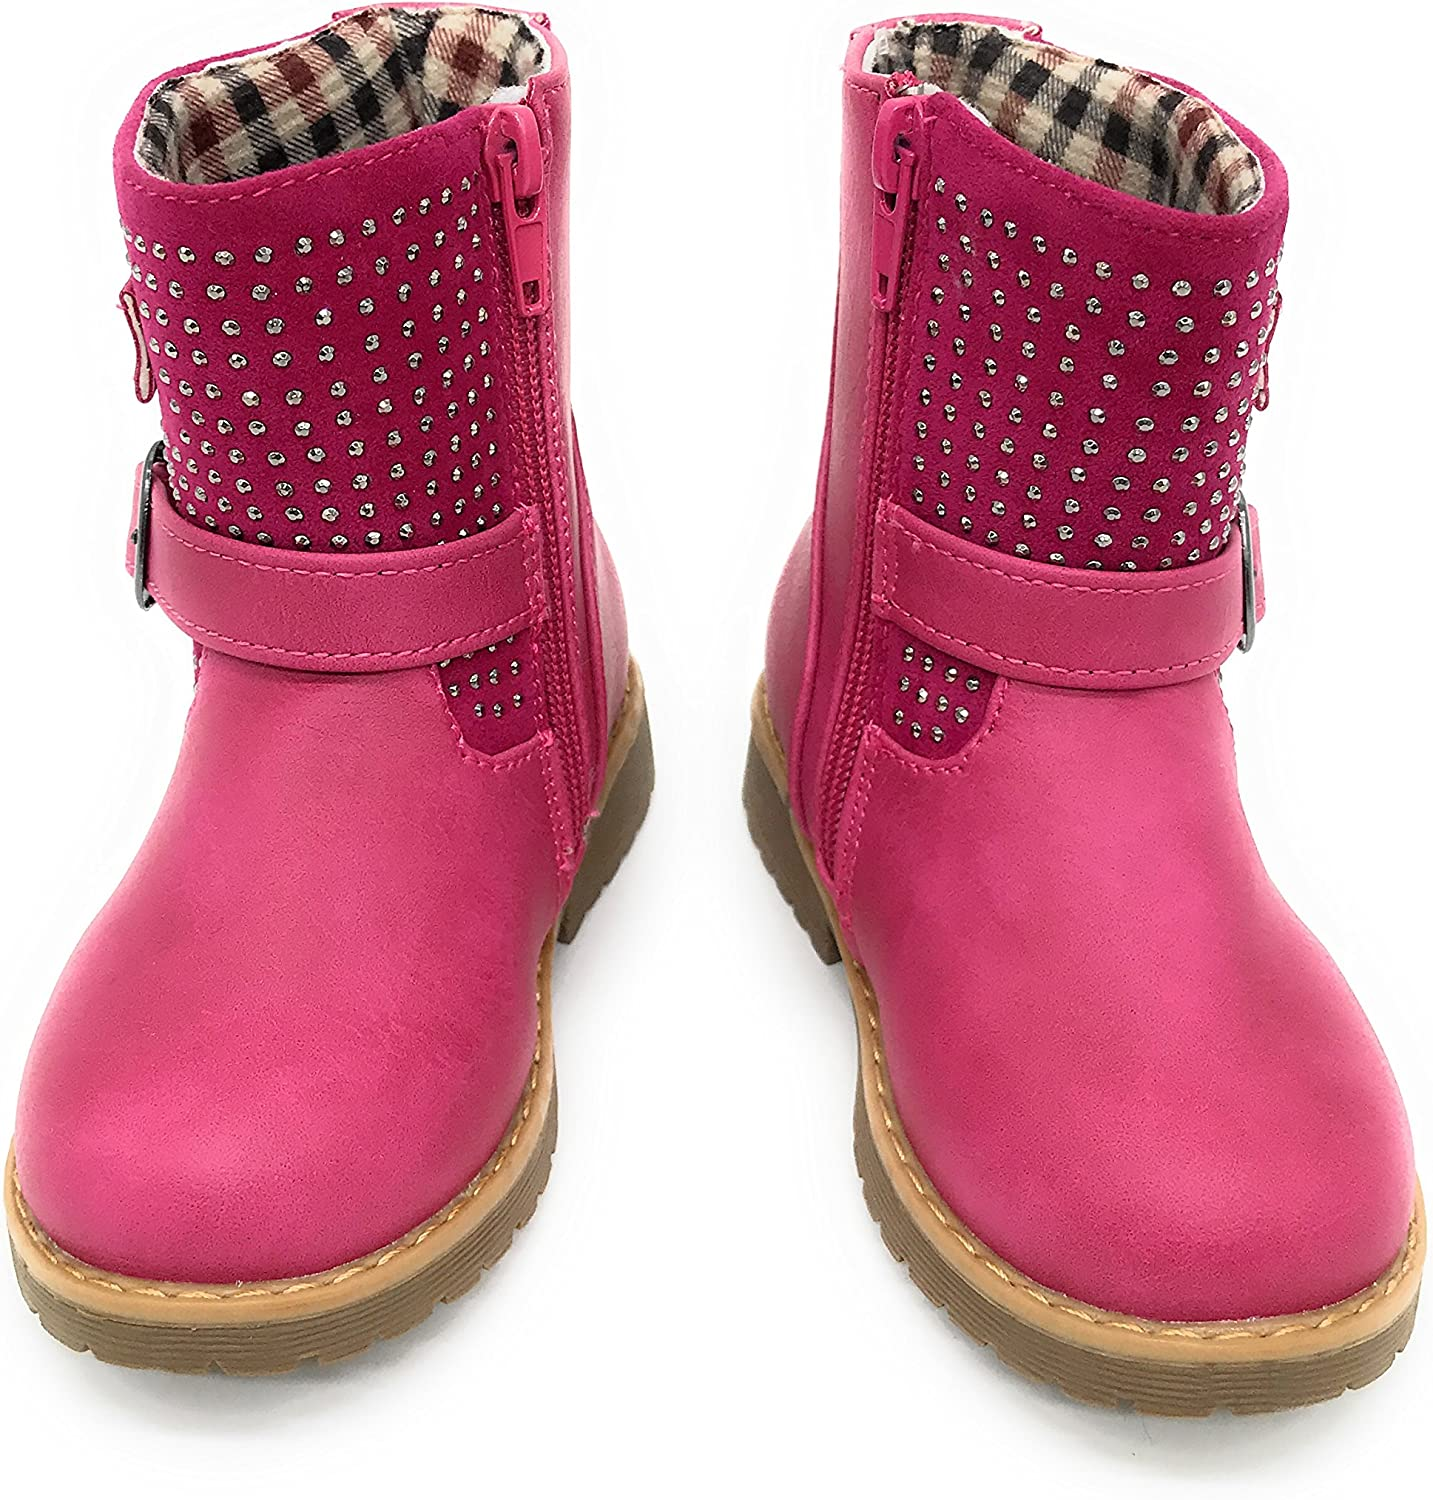 Blue Berry EASY21 Girls Fashion Cute Toddler//Infant Winter Snow Boots